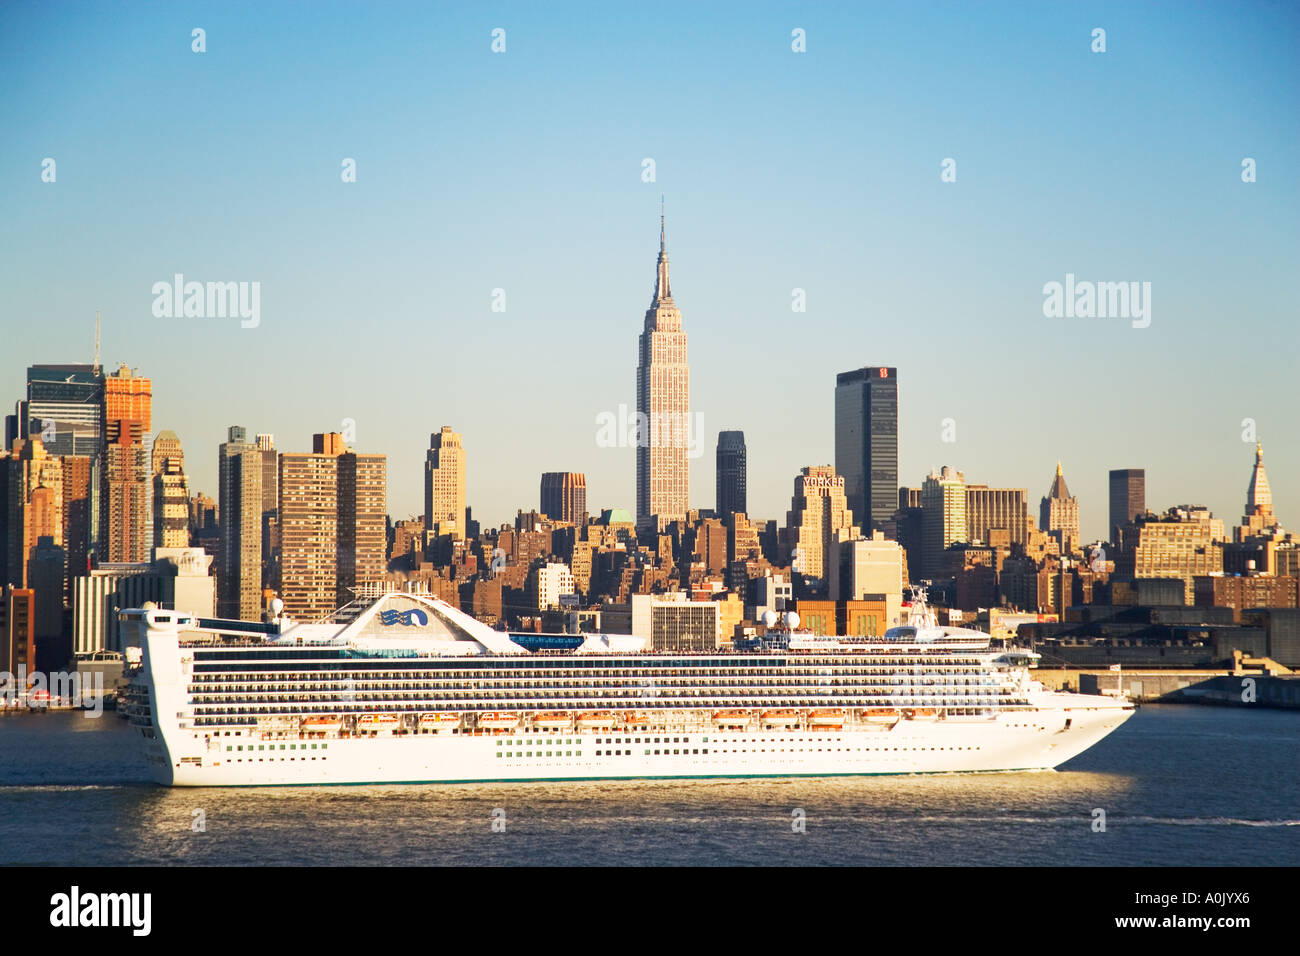 EMPIRE STATE BUILDING WITH CRUISE SHIP NEW YORK CITY Stock Photo - Building a cruise ship